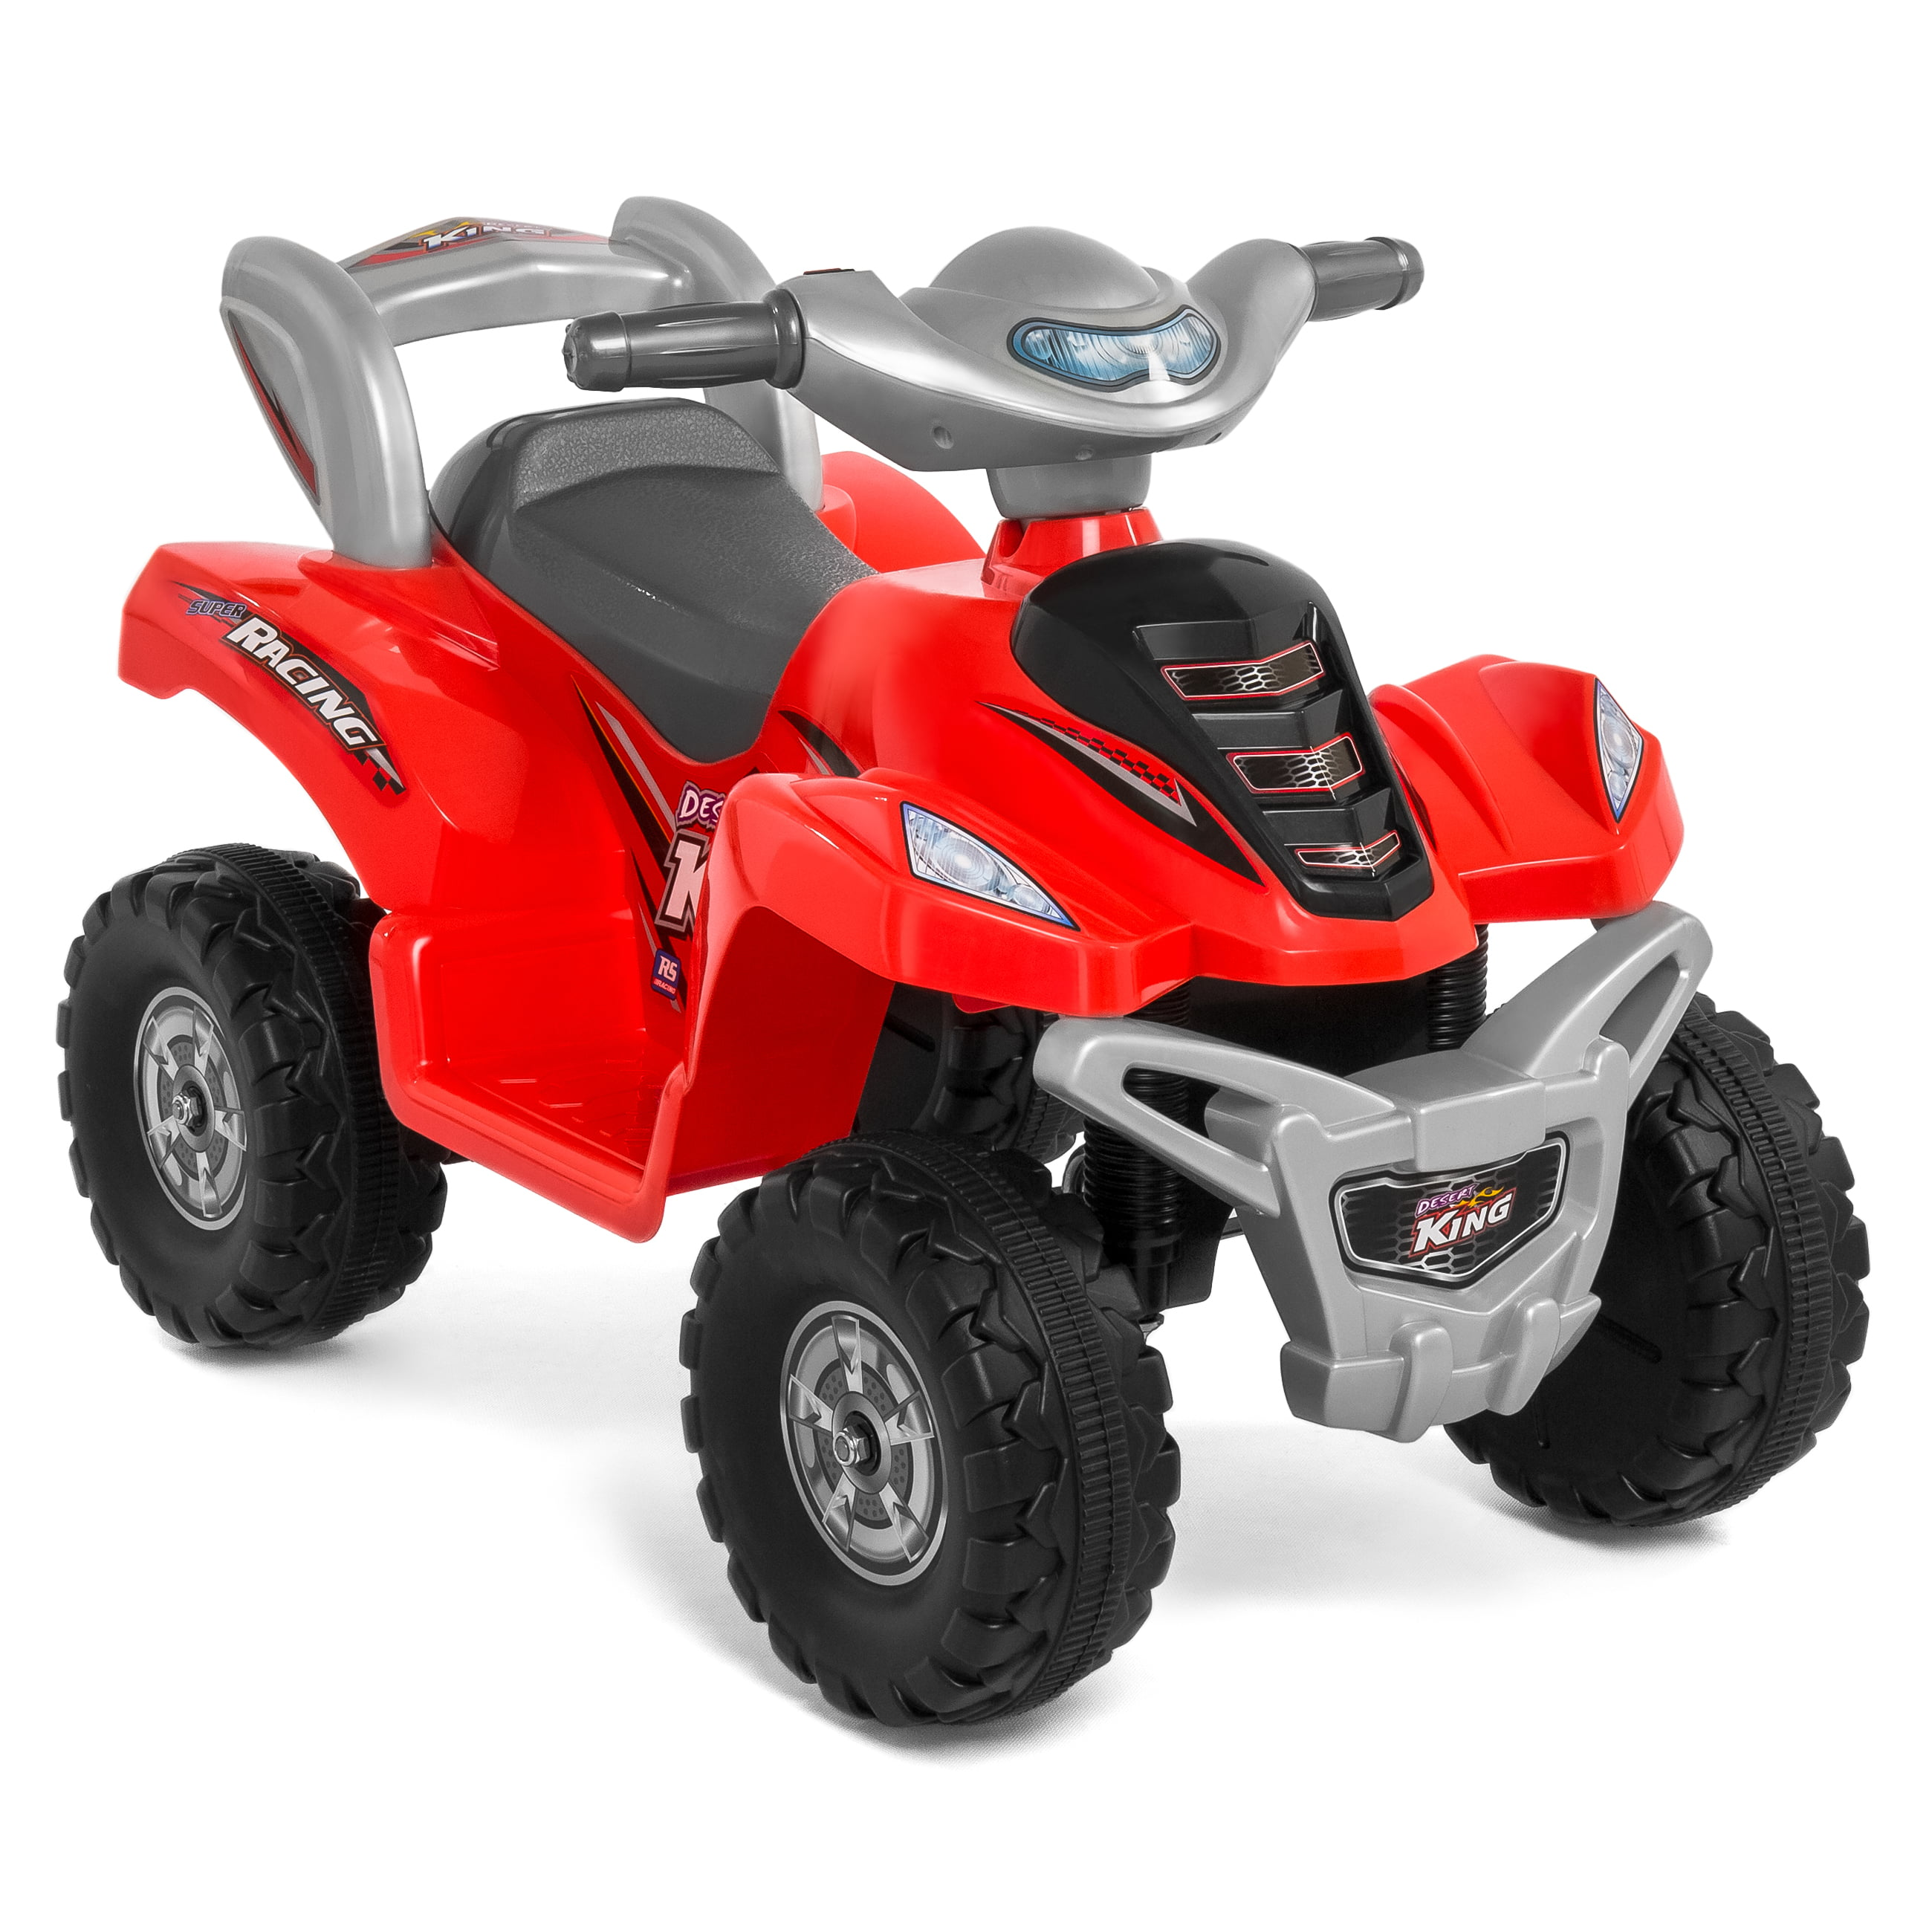 c50bd7328c9 Best Choice Products 6V Kids Battery Powered Electric 4-Wheeler Quad ATV  Bicycle Toddler Ride-On Toy w  Charger